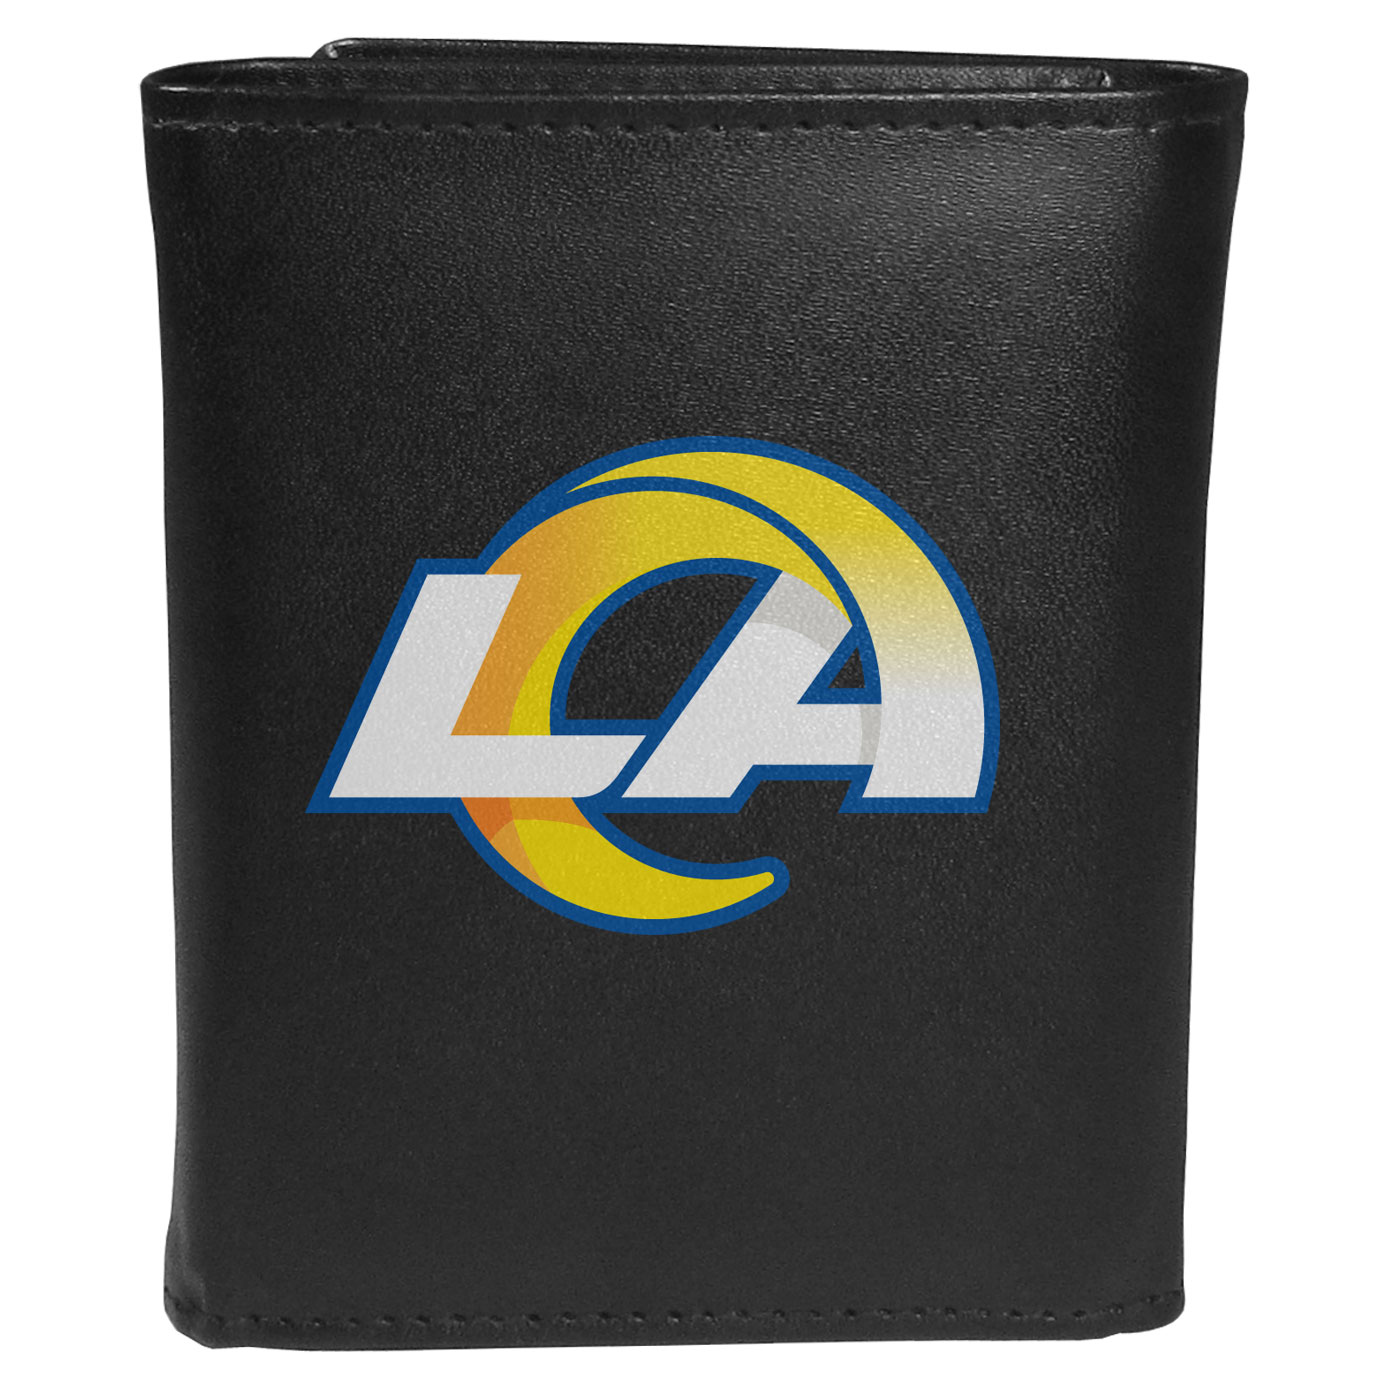 Los Angeles Rams Tri-fold Wallet Large Logo - Sports fans do not have to sacrifice style with this classic tri-fold wallet that sports theLos Angeles Rams?extra large logo. This men's fashion accessory has a leather grain look and expert craftmanship for a quality wallet at a great price. The wallet features inner credit card slots, windowed ID slot and a large billfold pocket. The front of the wallet features an extra large printed team logo.